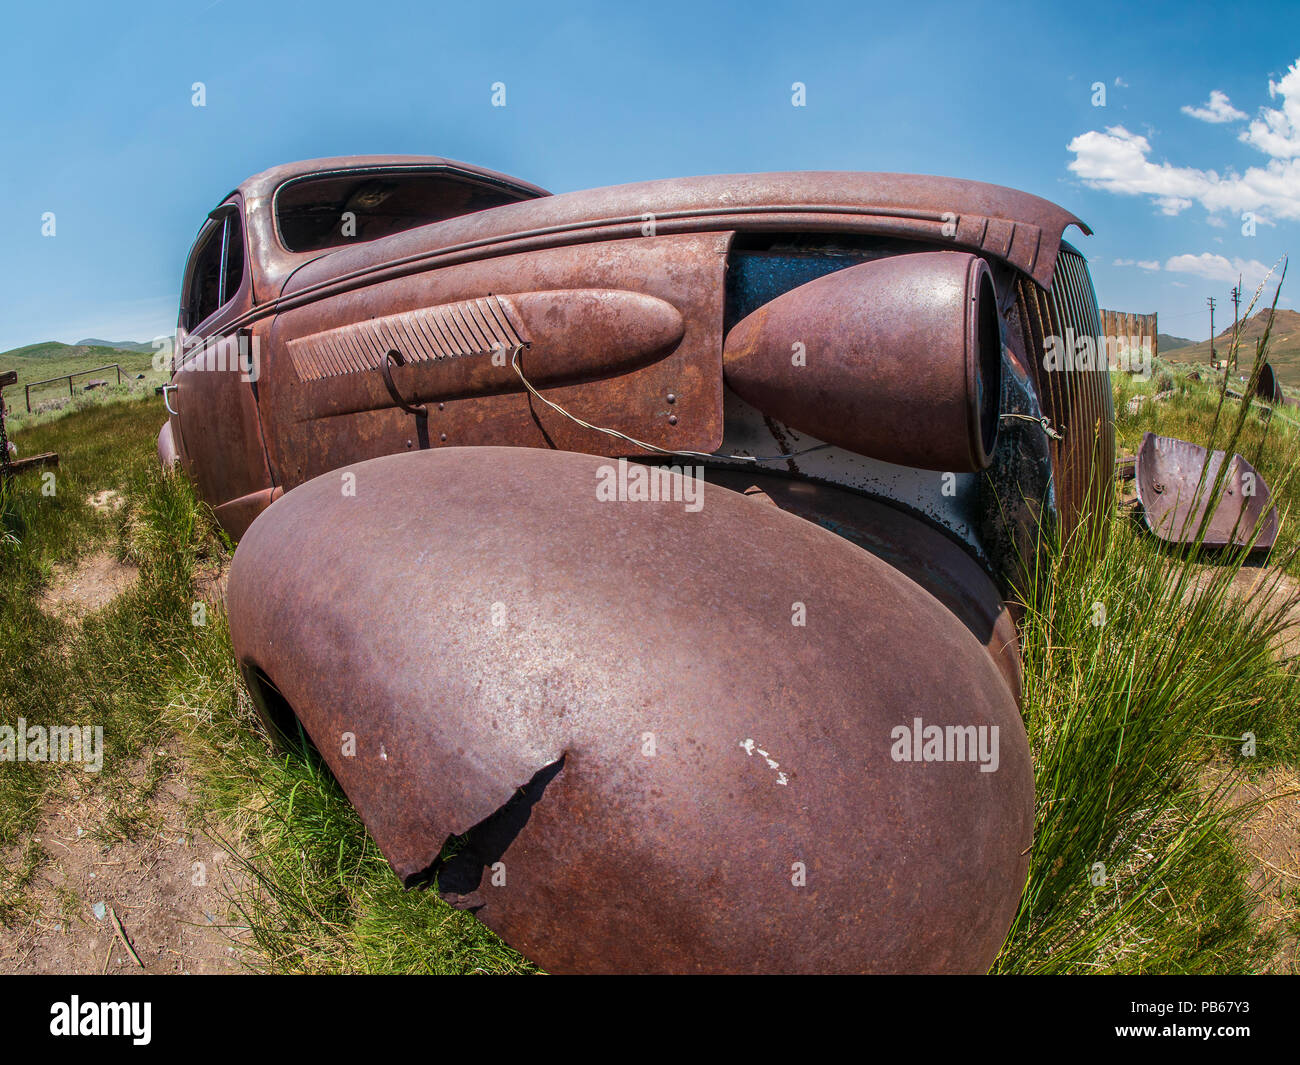 Old car, Bodie ghost town, Bodie State Historic Park, California. - Stock Image